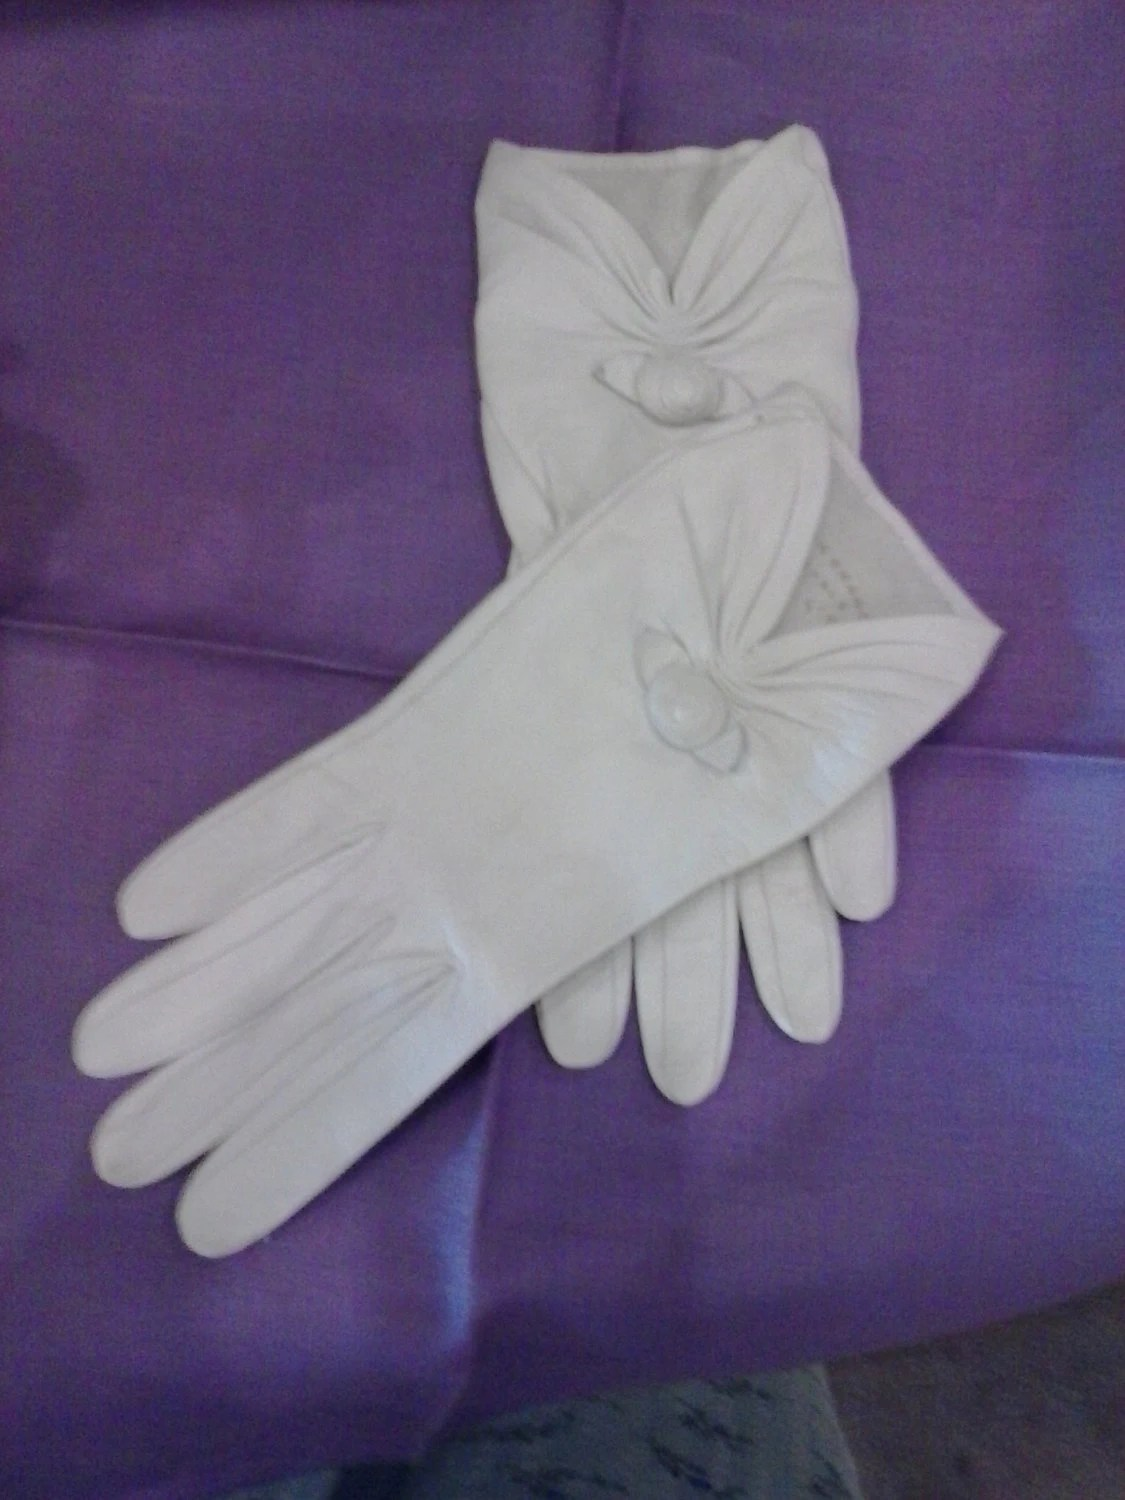 ROSEBUD GLOVES made in France vintage 1950s white leather wrist gloves size 6.5